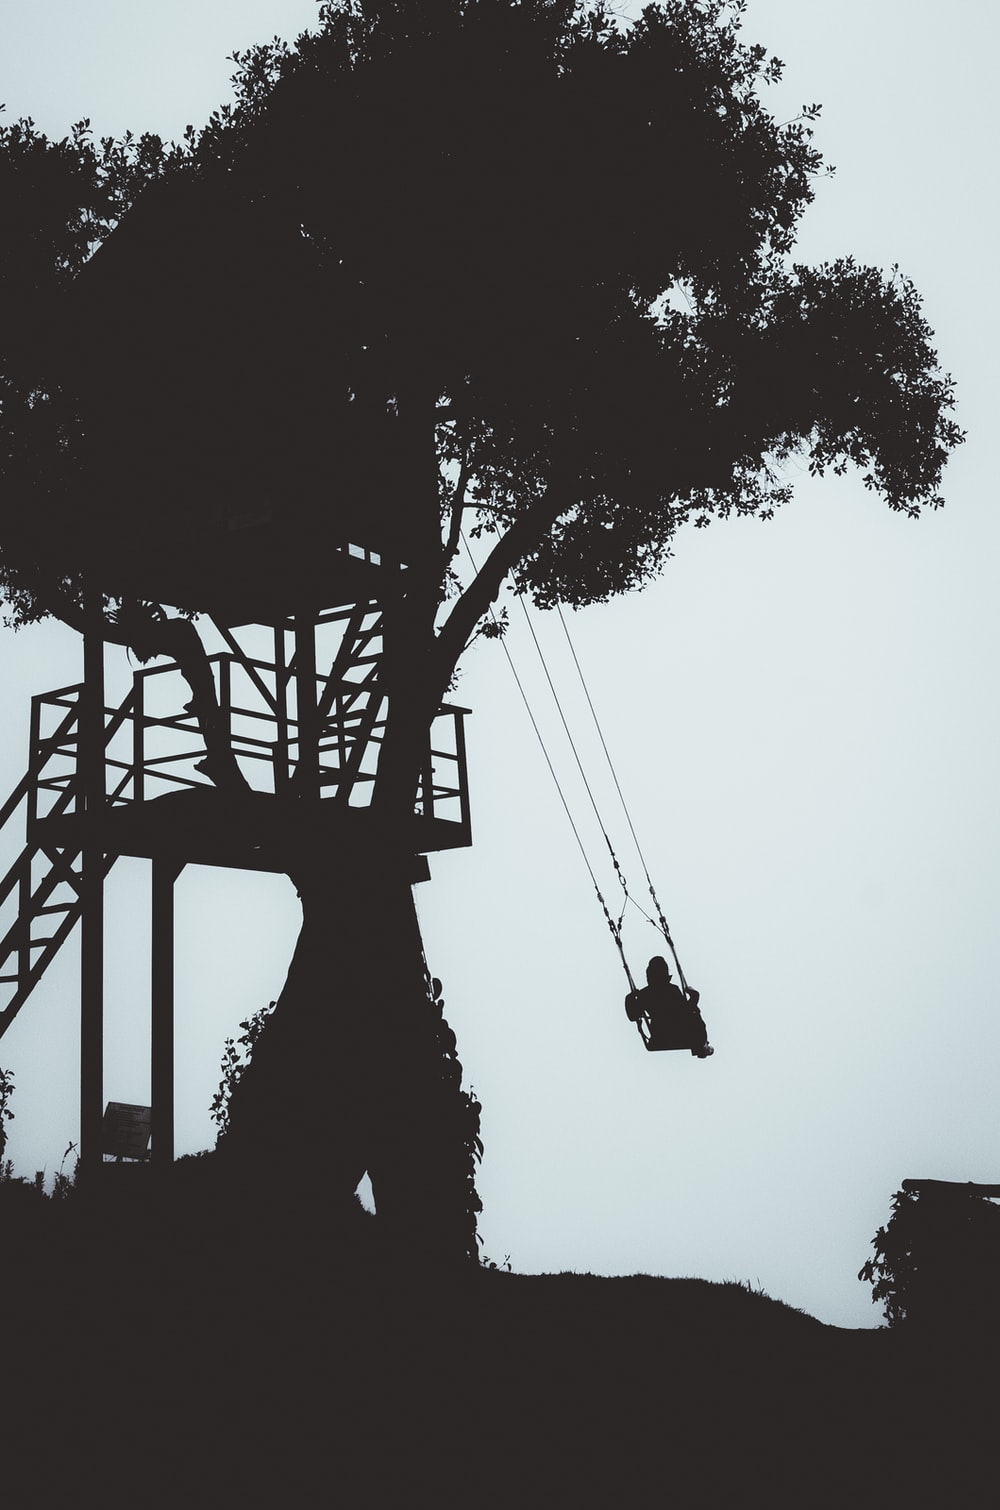 silhouette photography of person swinging under the tree